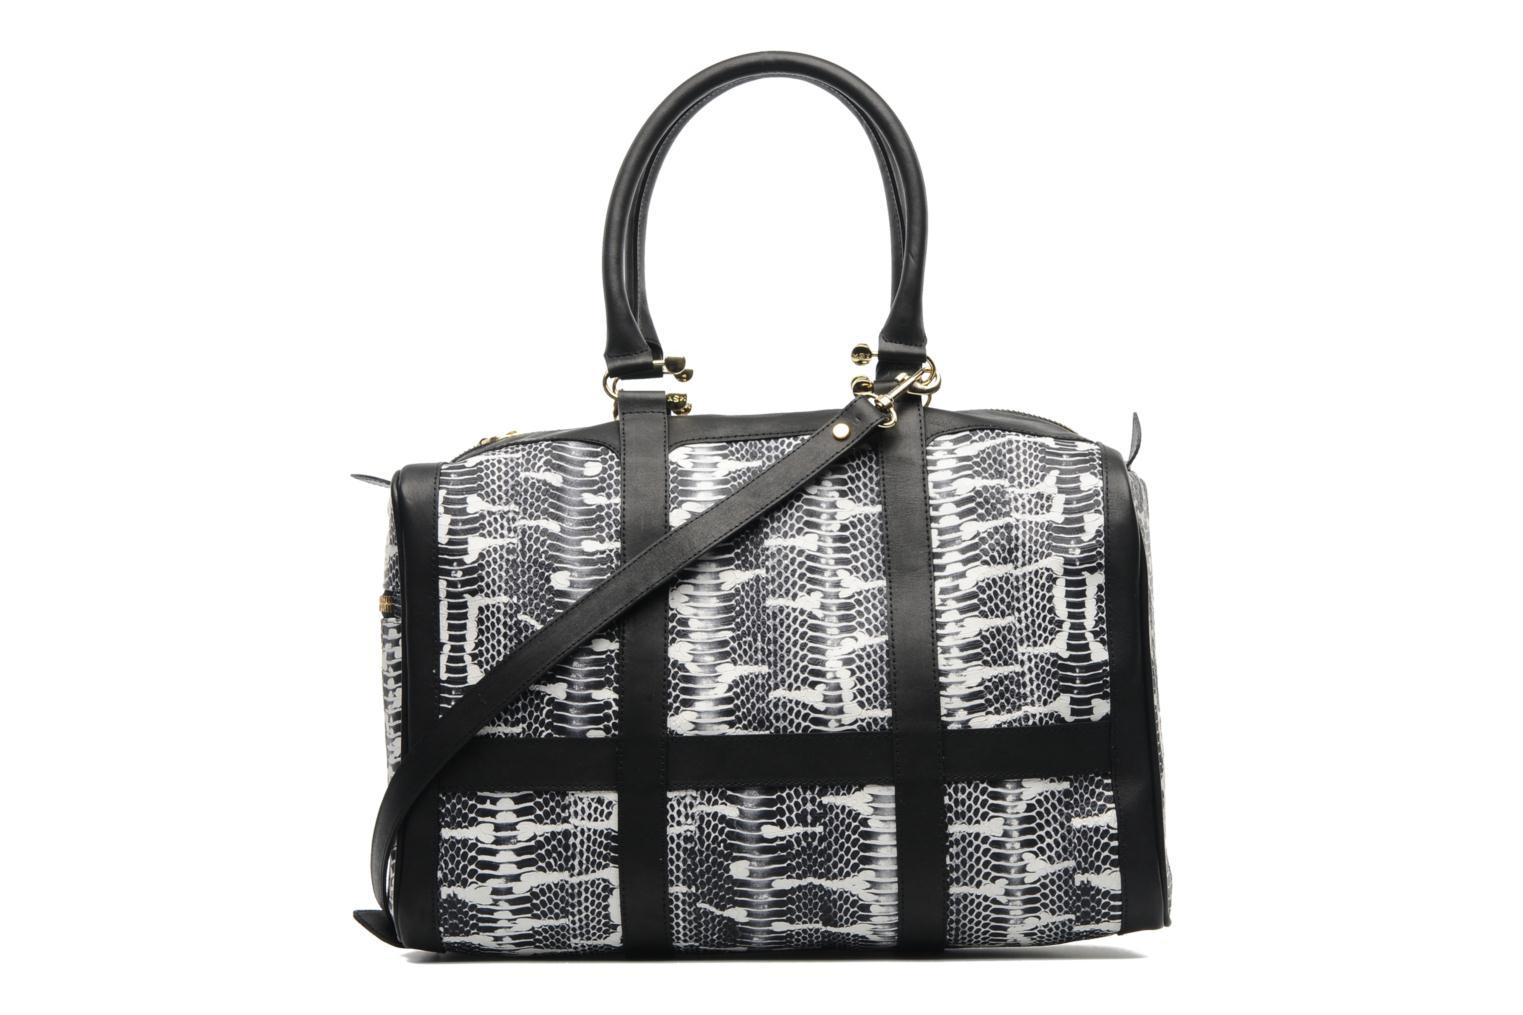 Alex Large Impression python Noir&Blanc